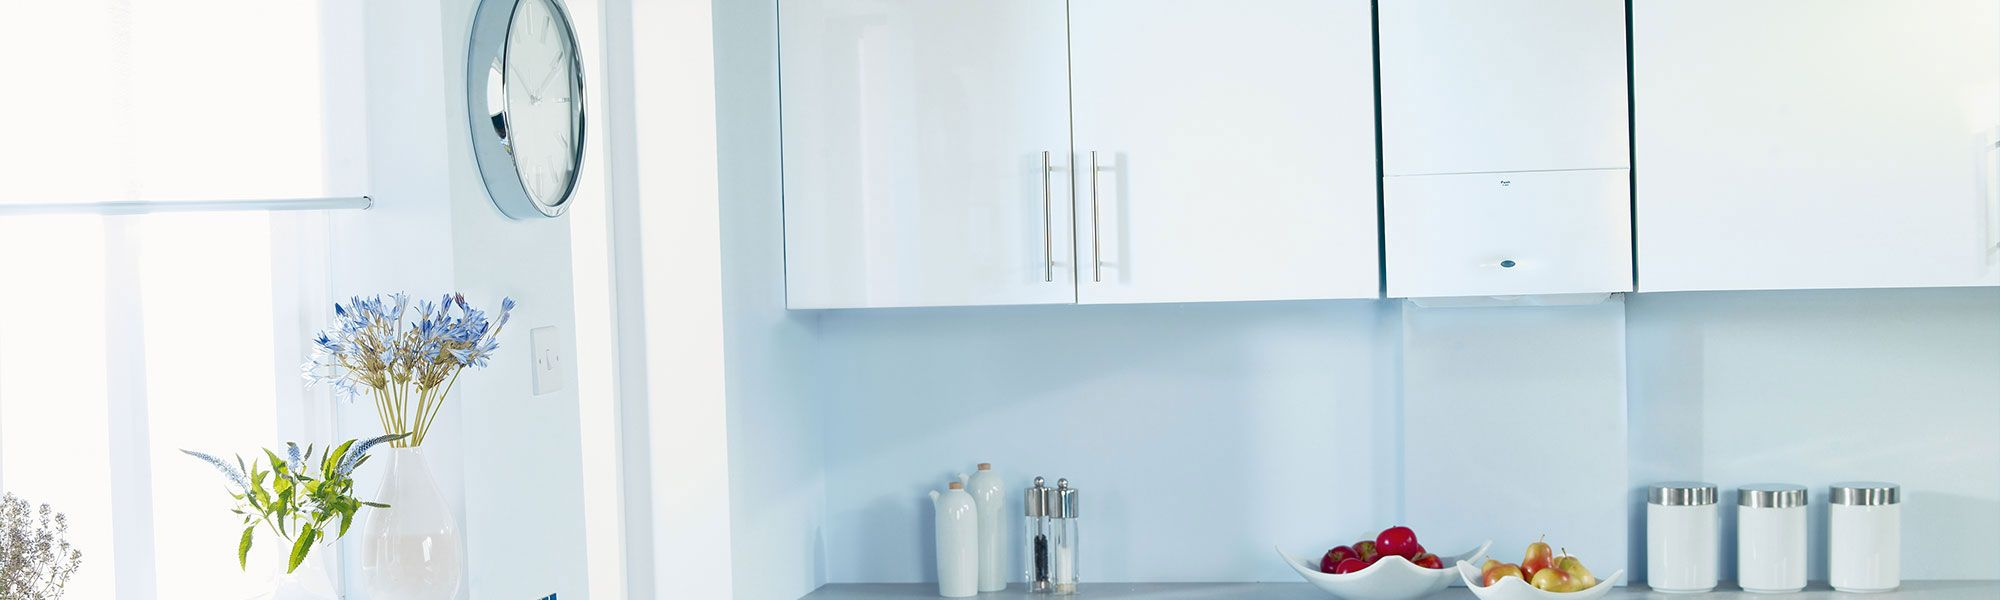 Complete Heating & Gas boiler installation and all aspects of gas ...